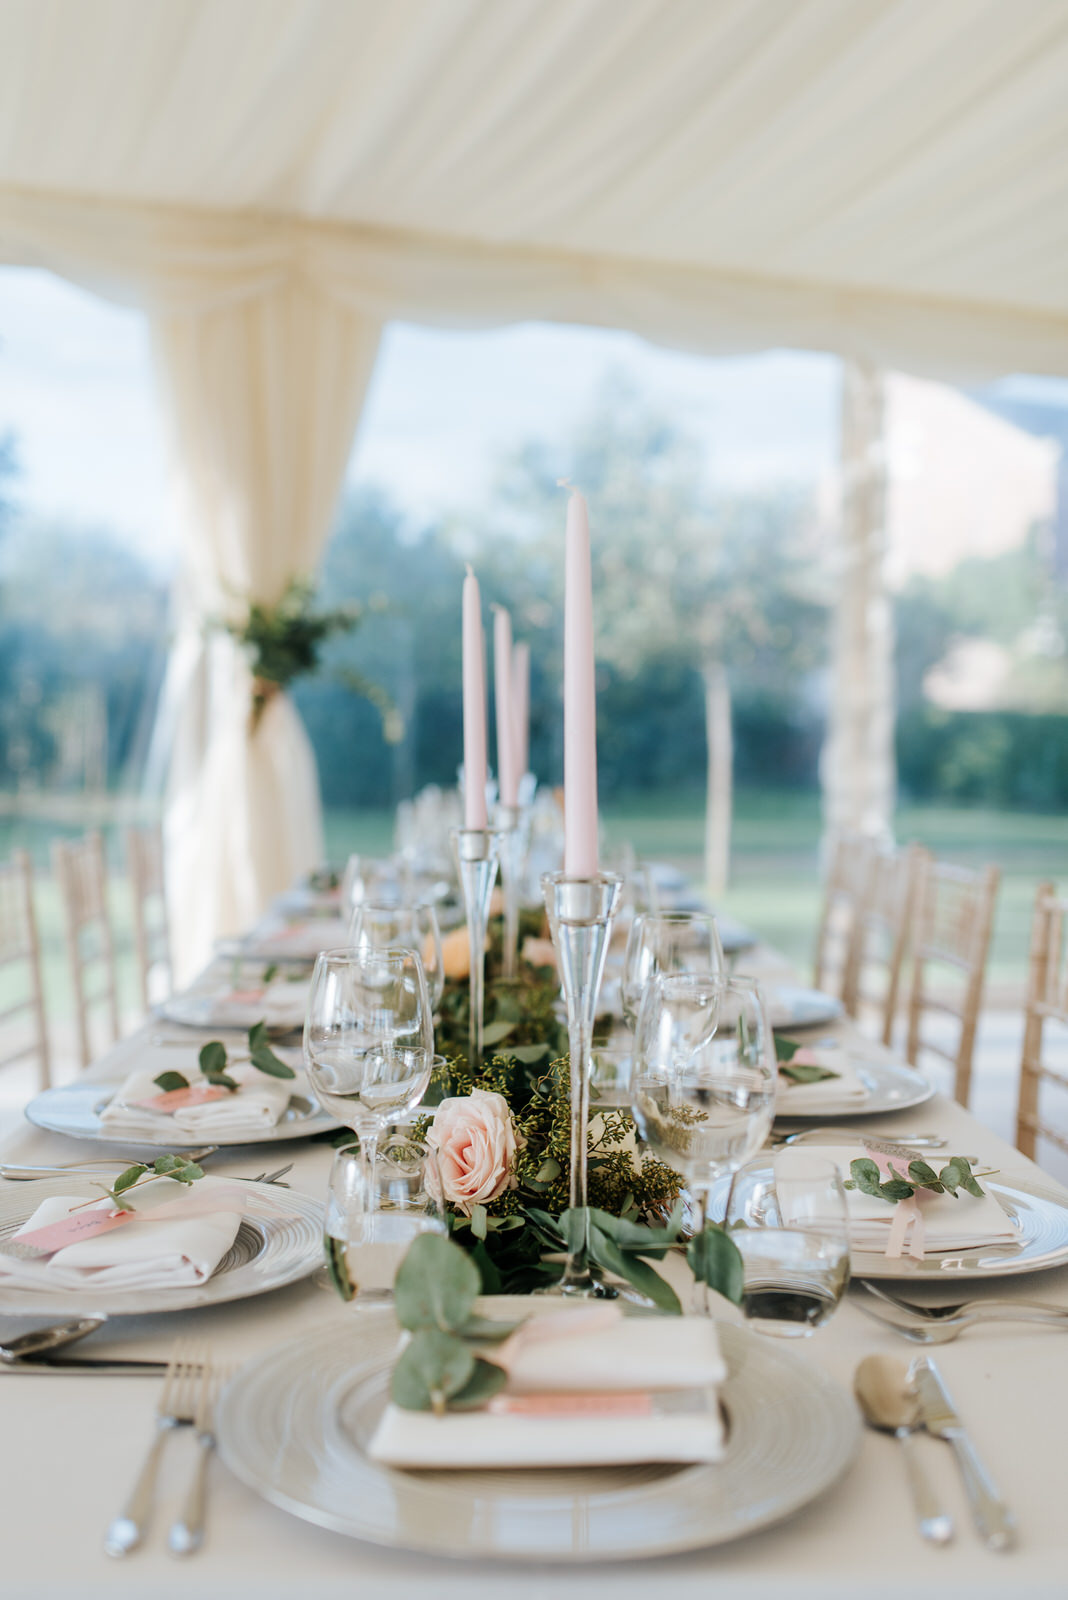 Close-up of table setting inside stunning, tree-lined garden mar